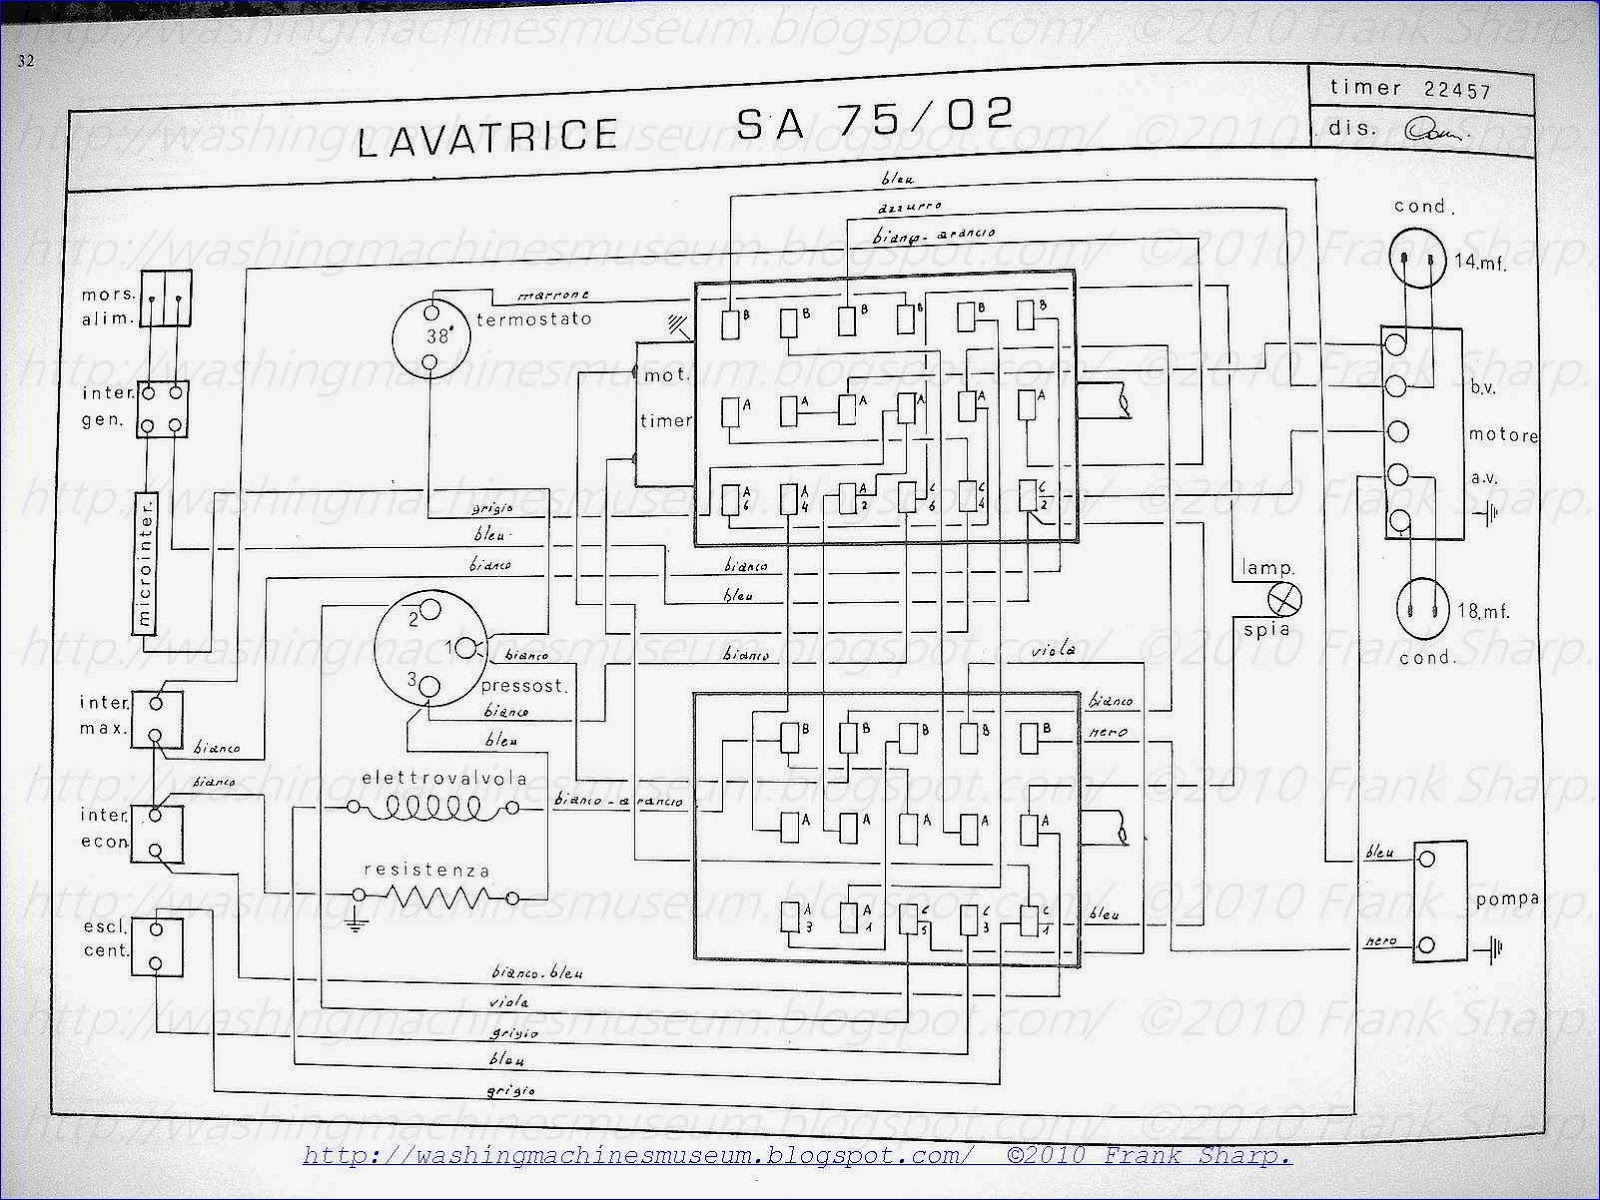 Washer Rama Museum.: CANDY SA75-02 TIMER 22547 SCHEMATIC